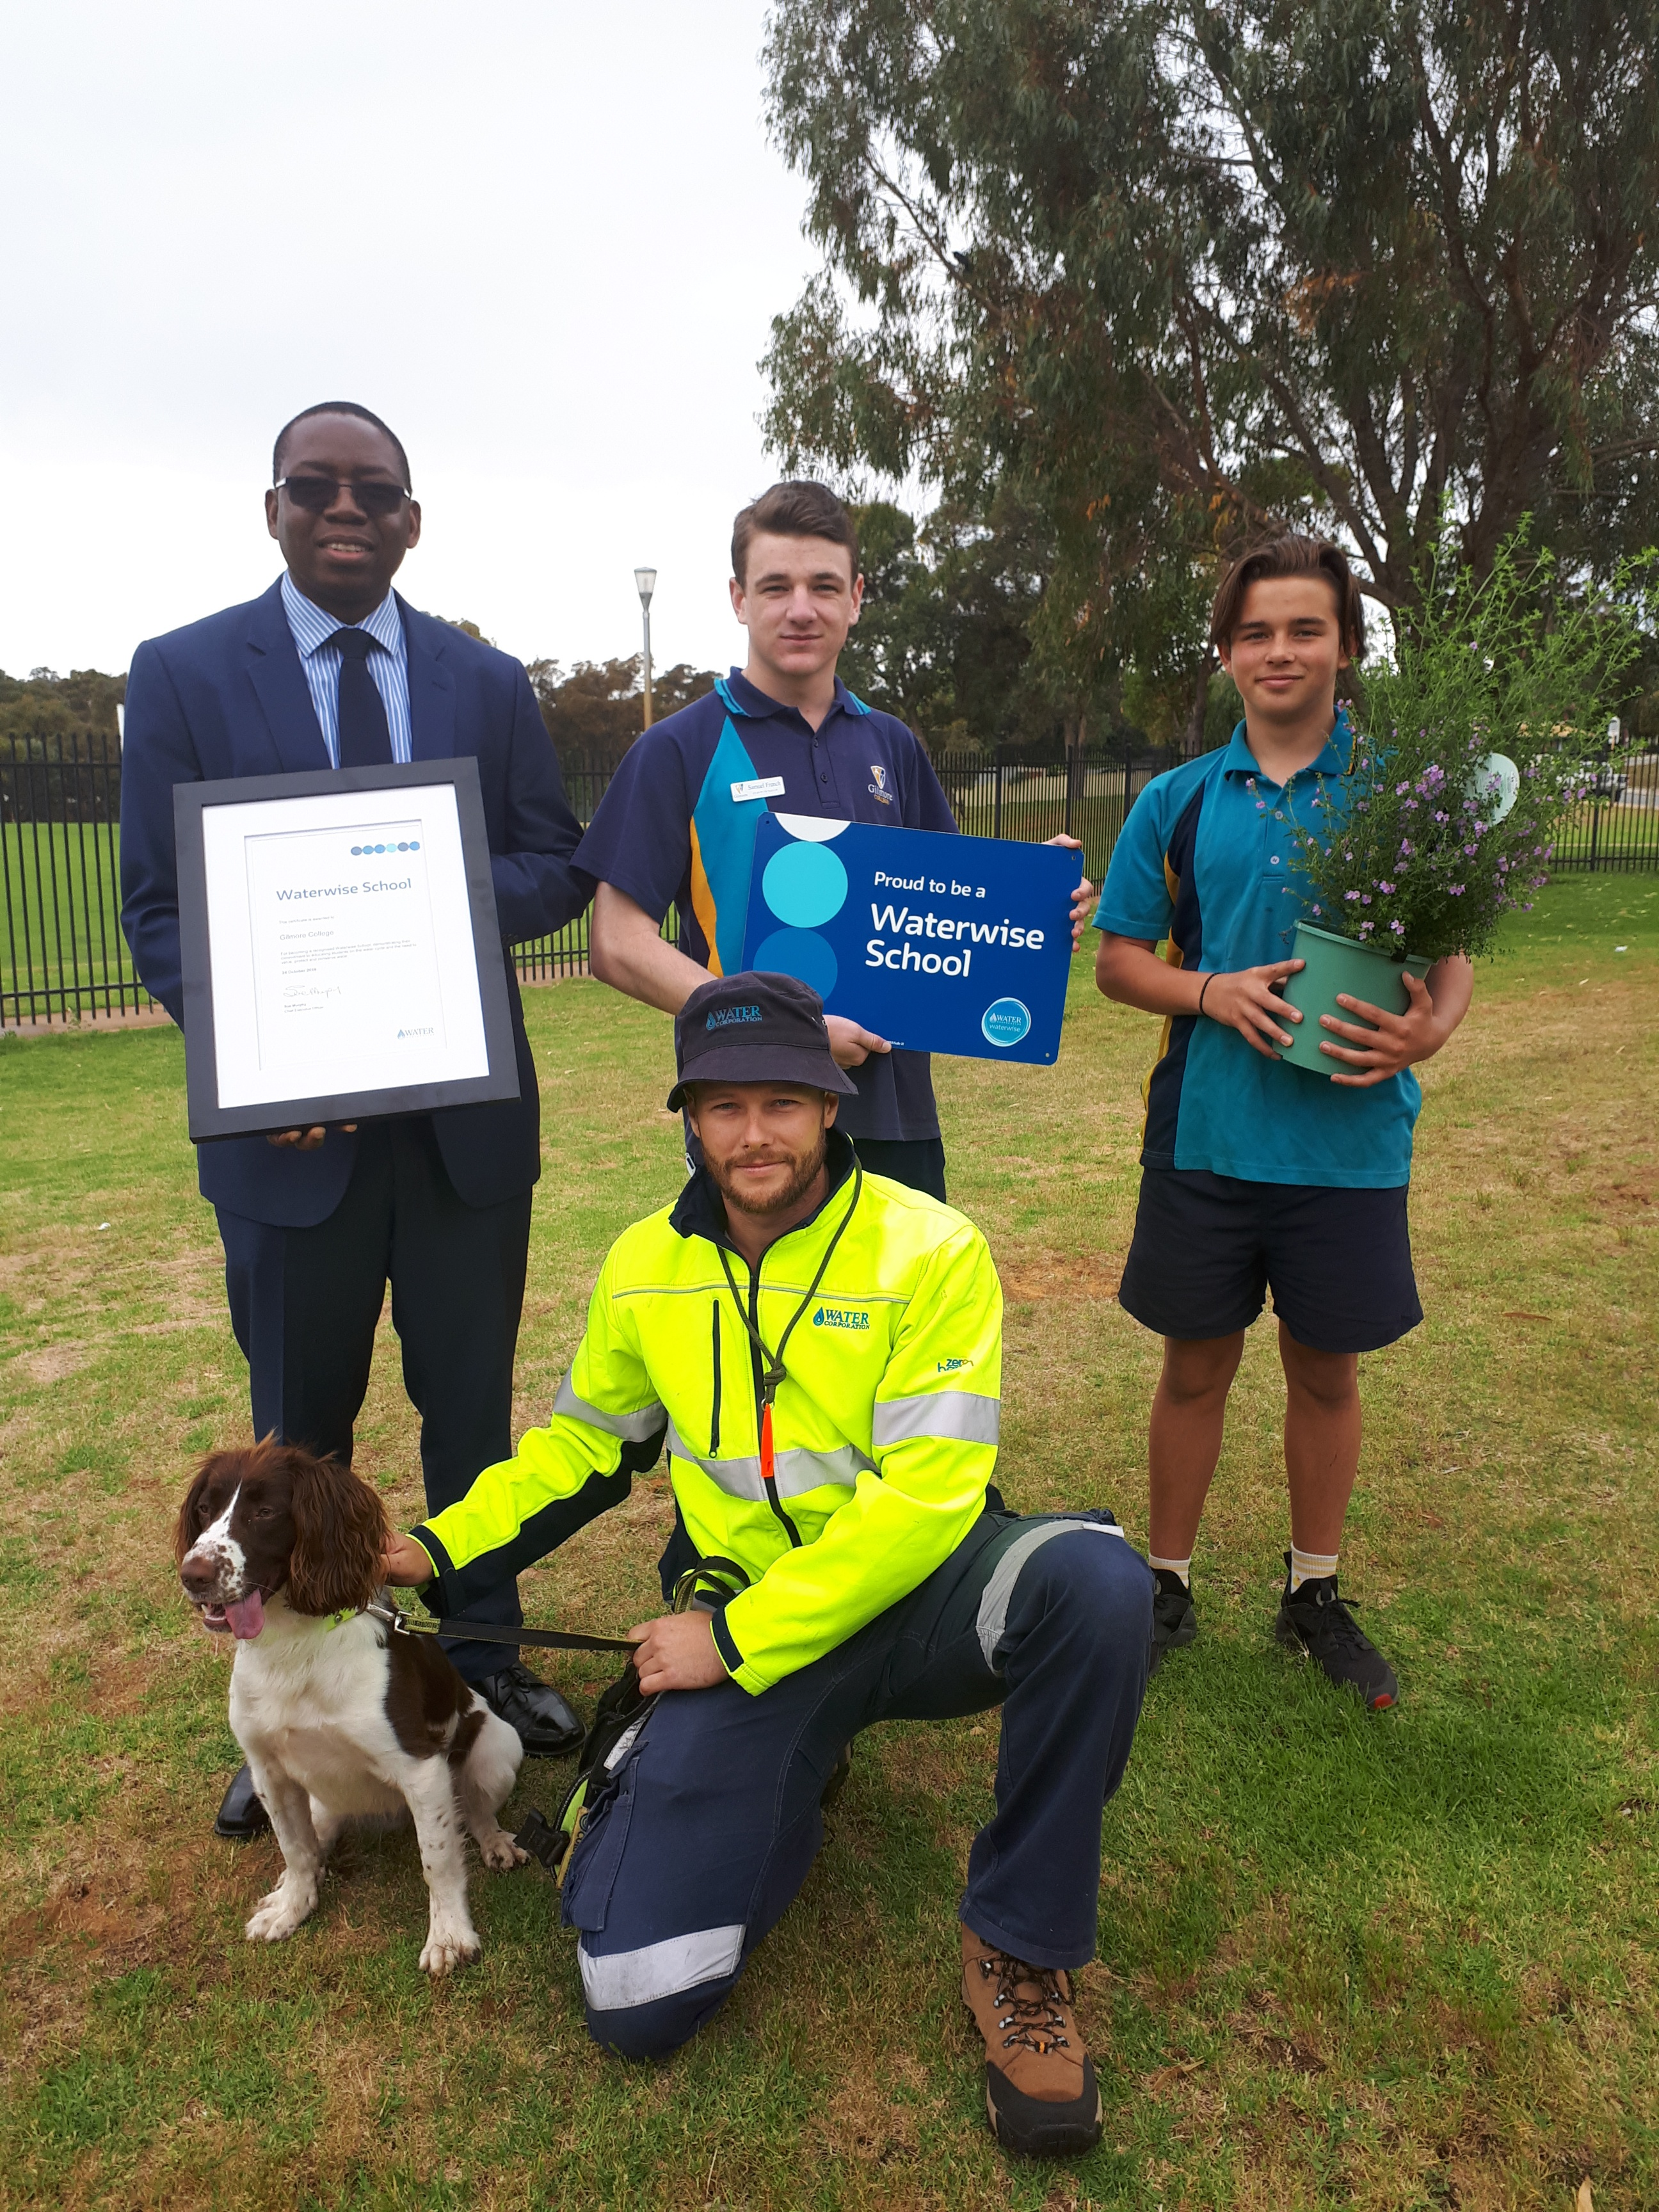 Gilmore College was recognised as a Waterwise School